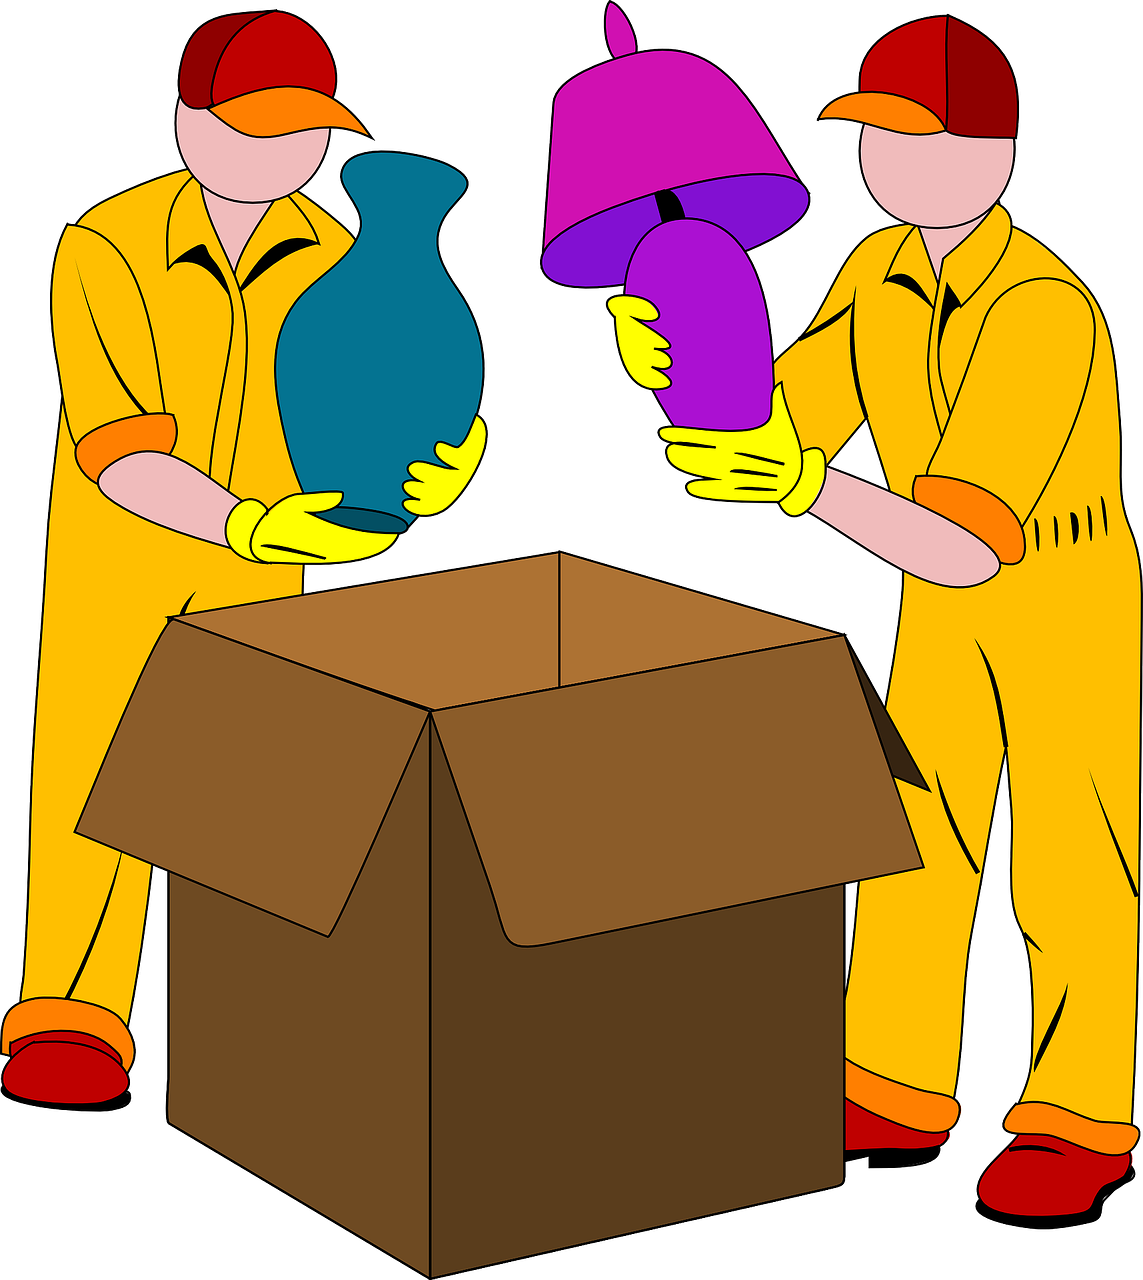 Full service movers packing fragile things in a box